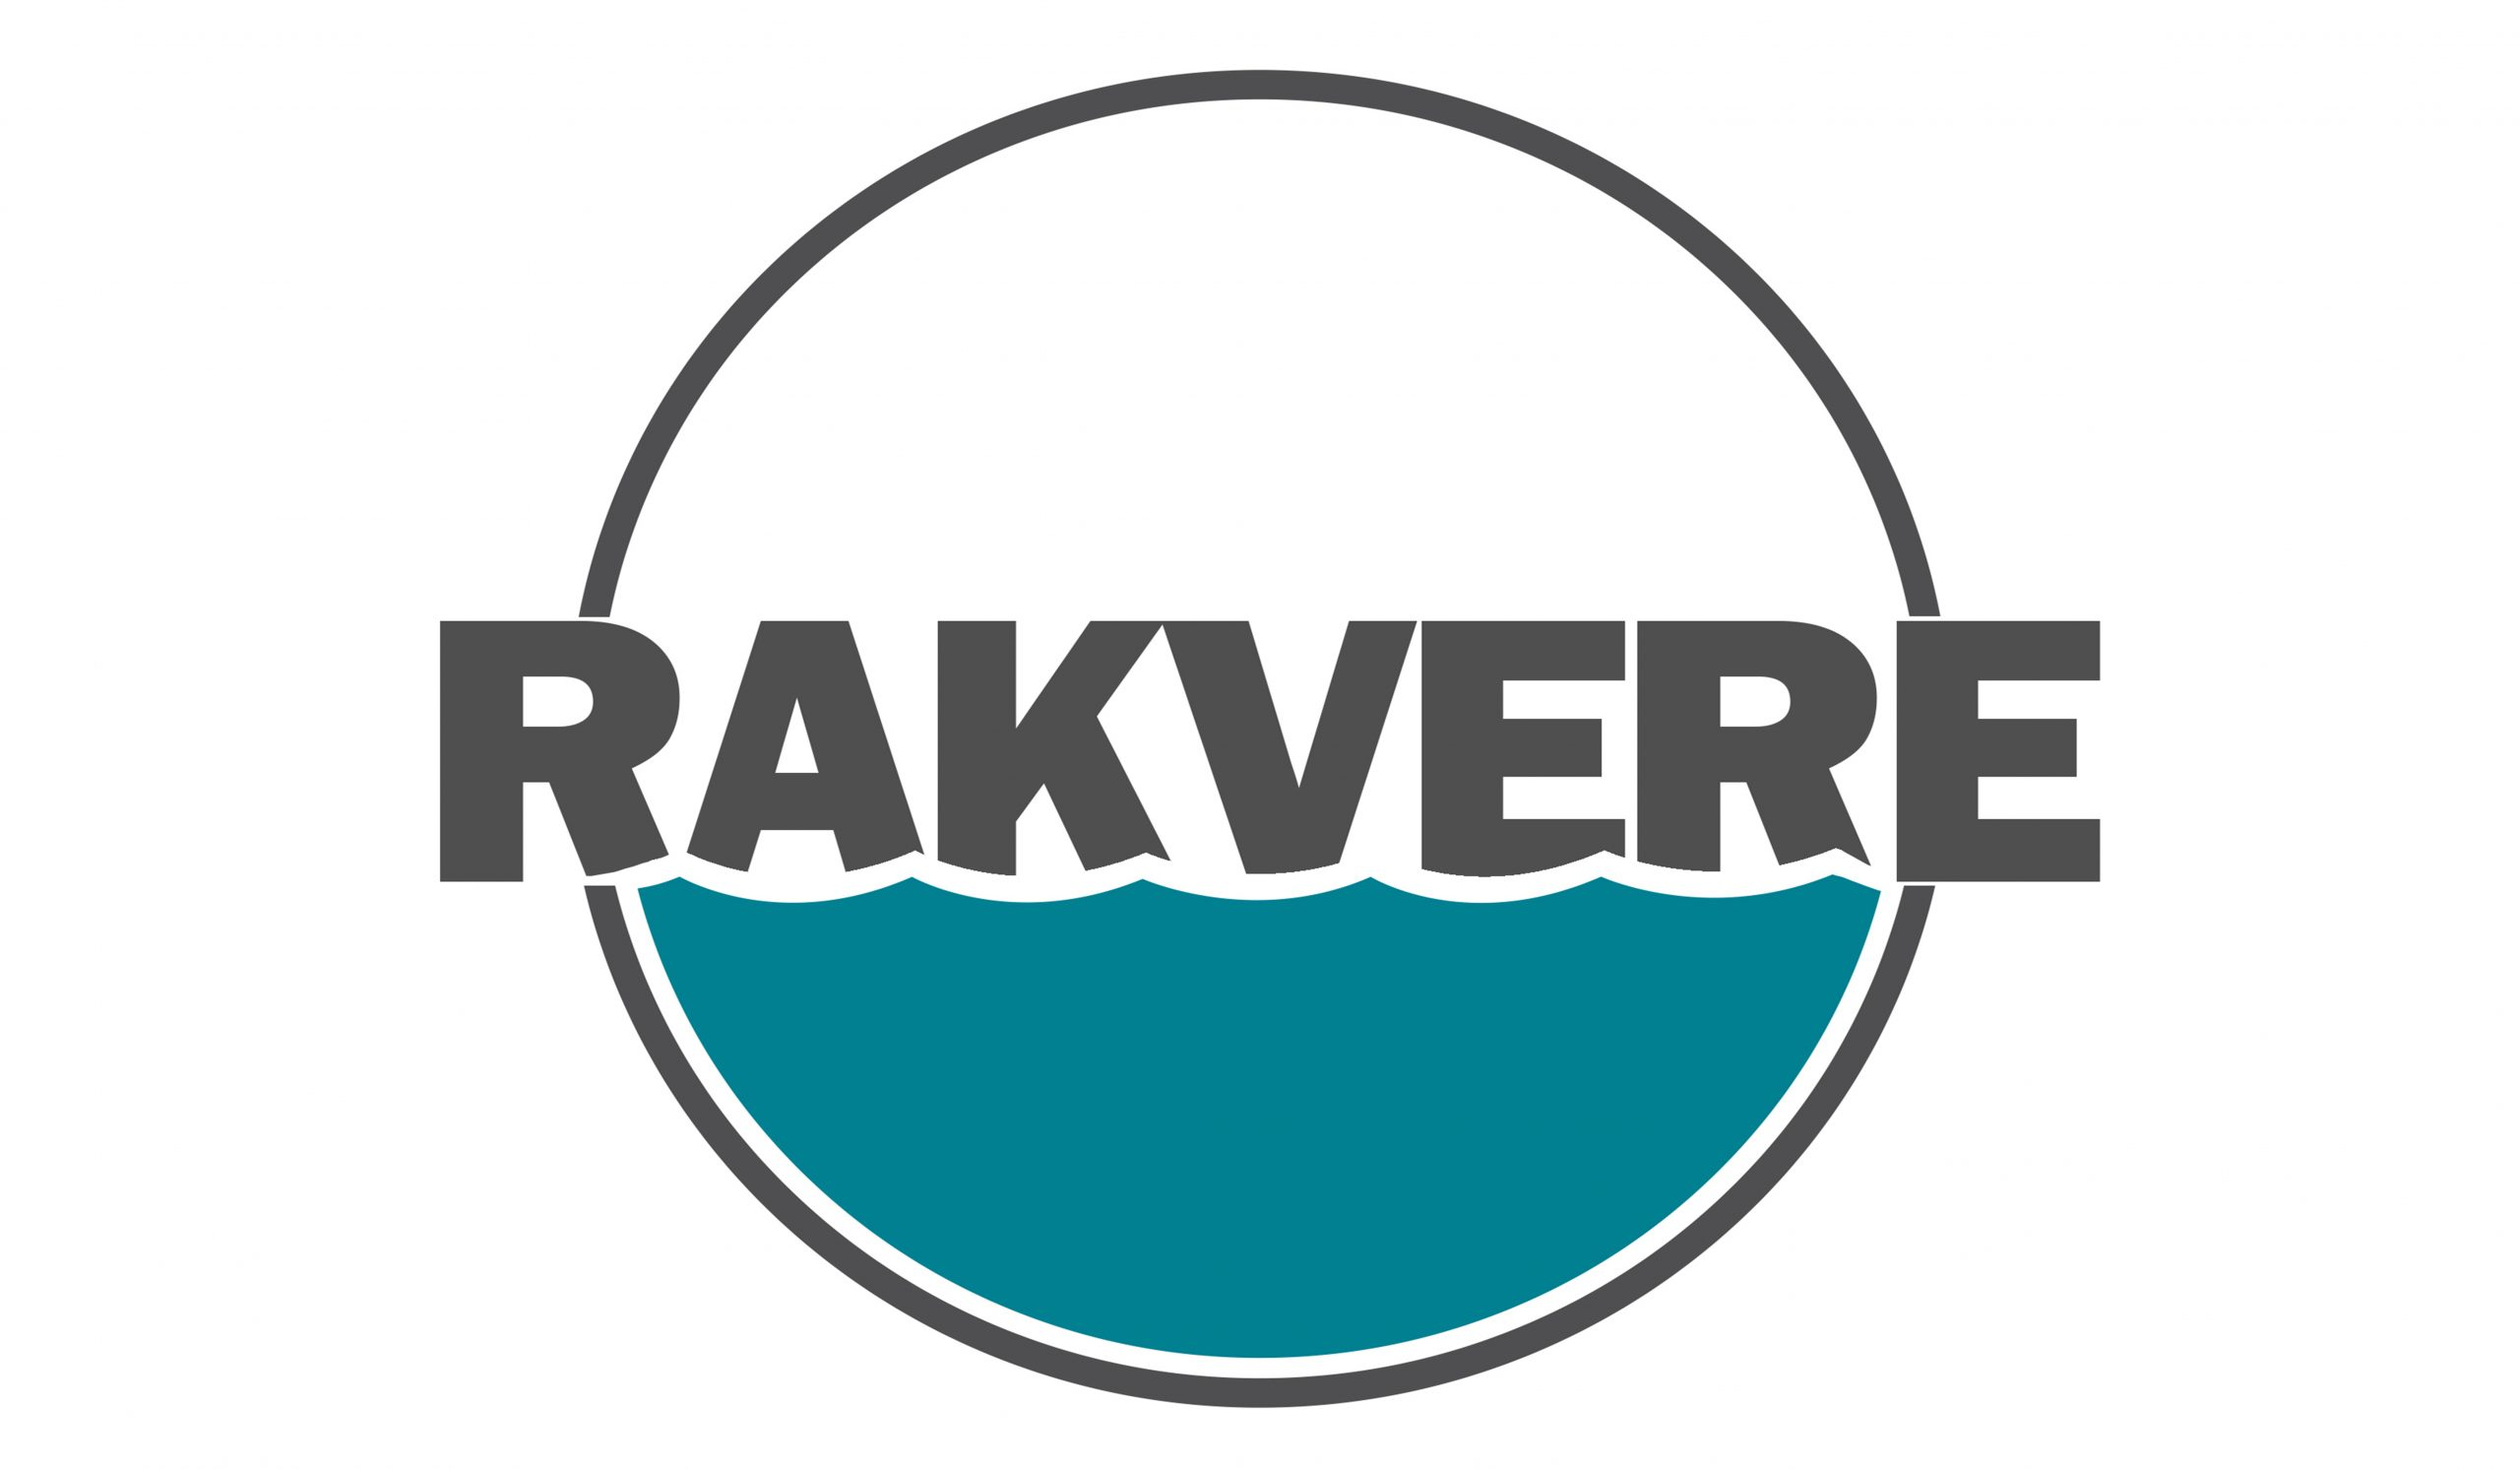 Project results - Rakvere